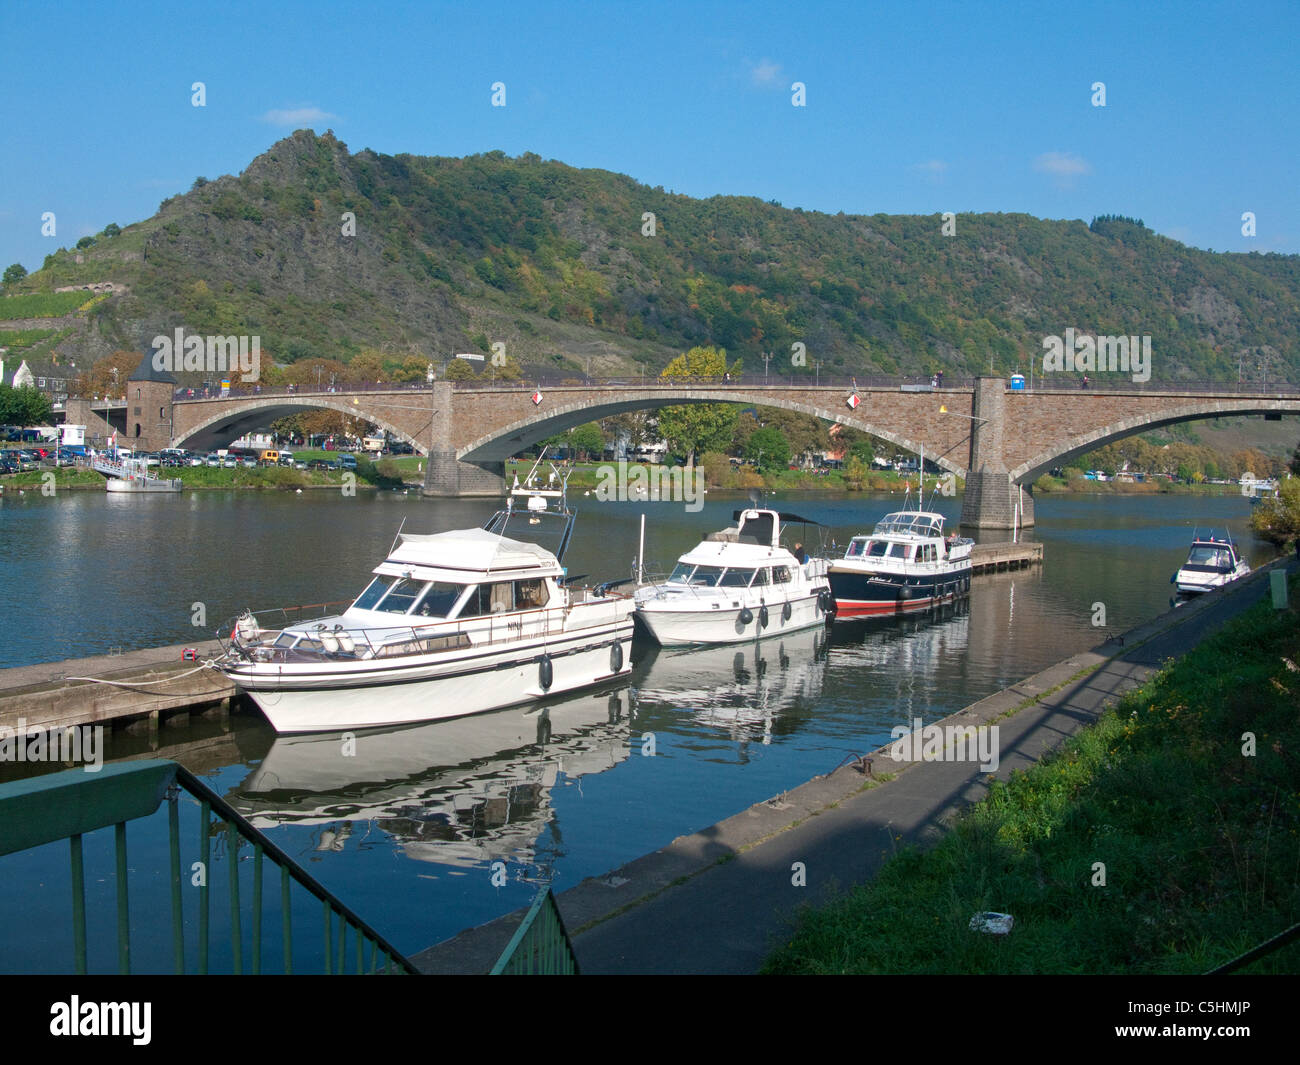 Boote vor der Bruecke, Cochem im Herbst, Mosel, Boats in front of the Cochem bridge, Moselle - Stock Image